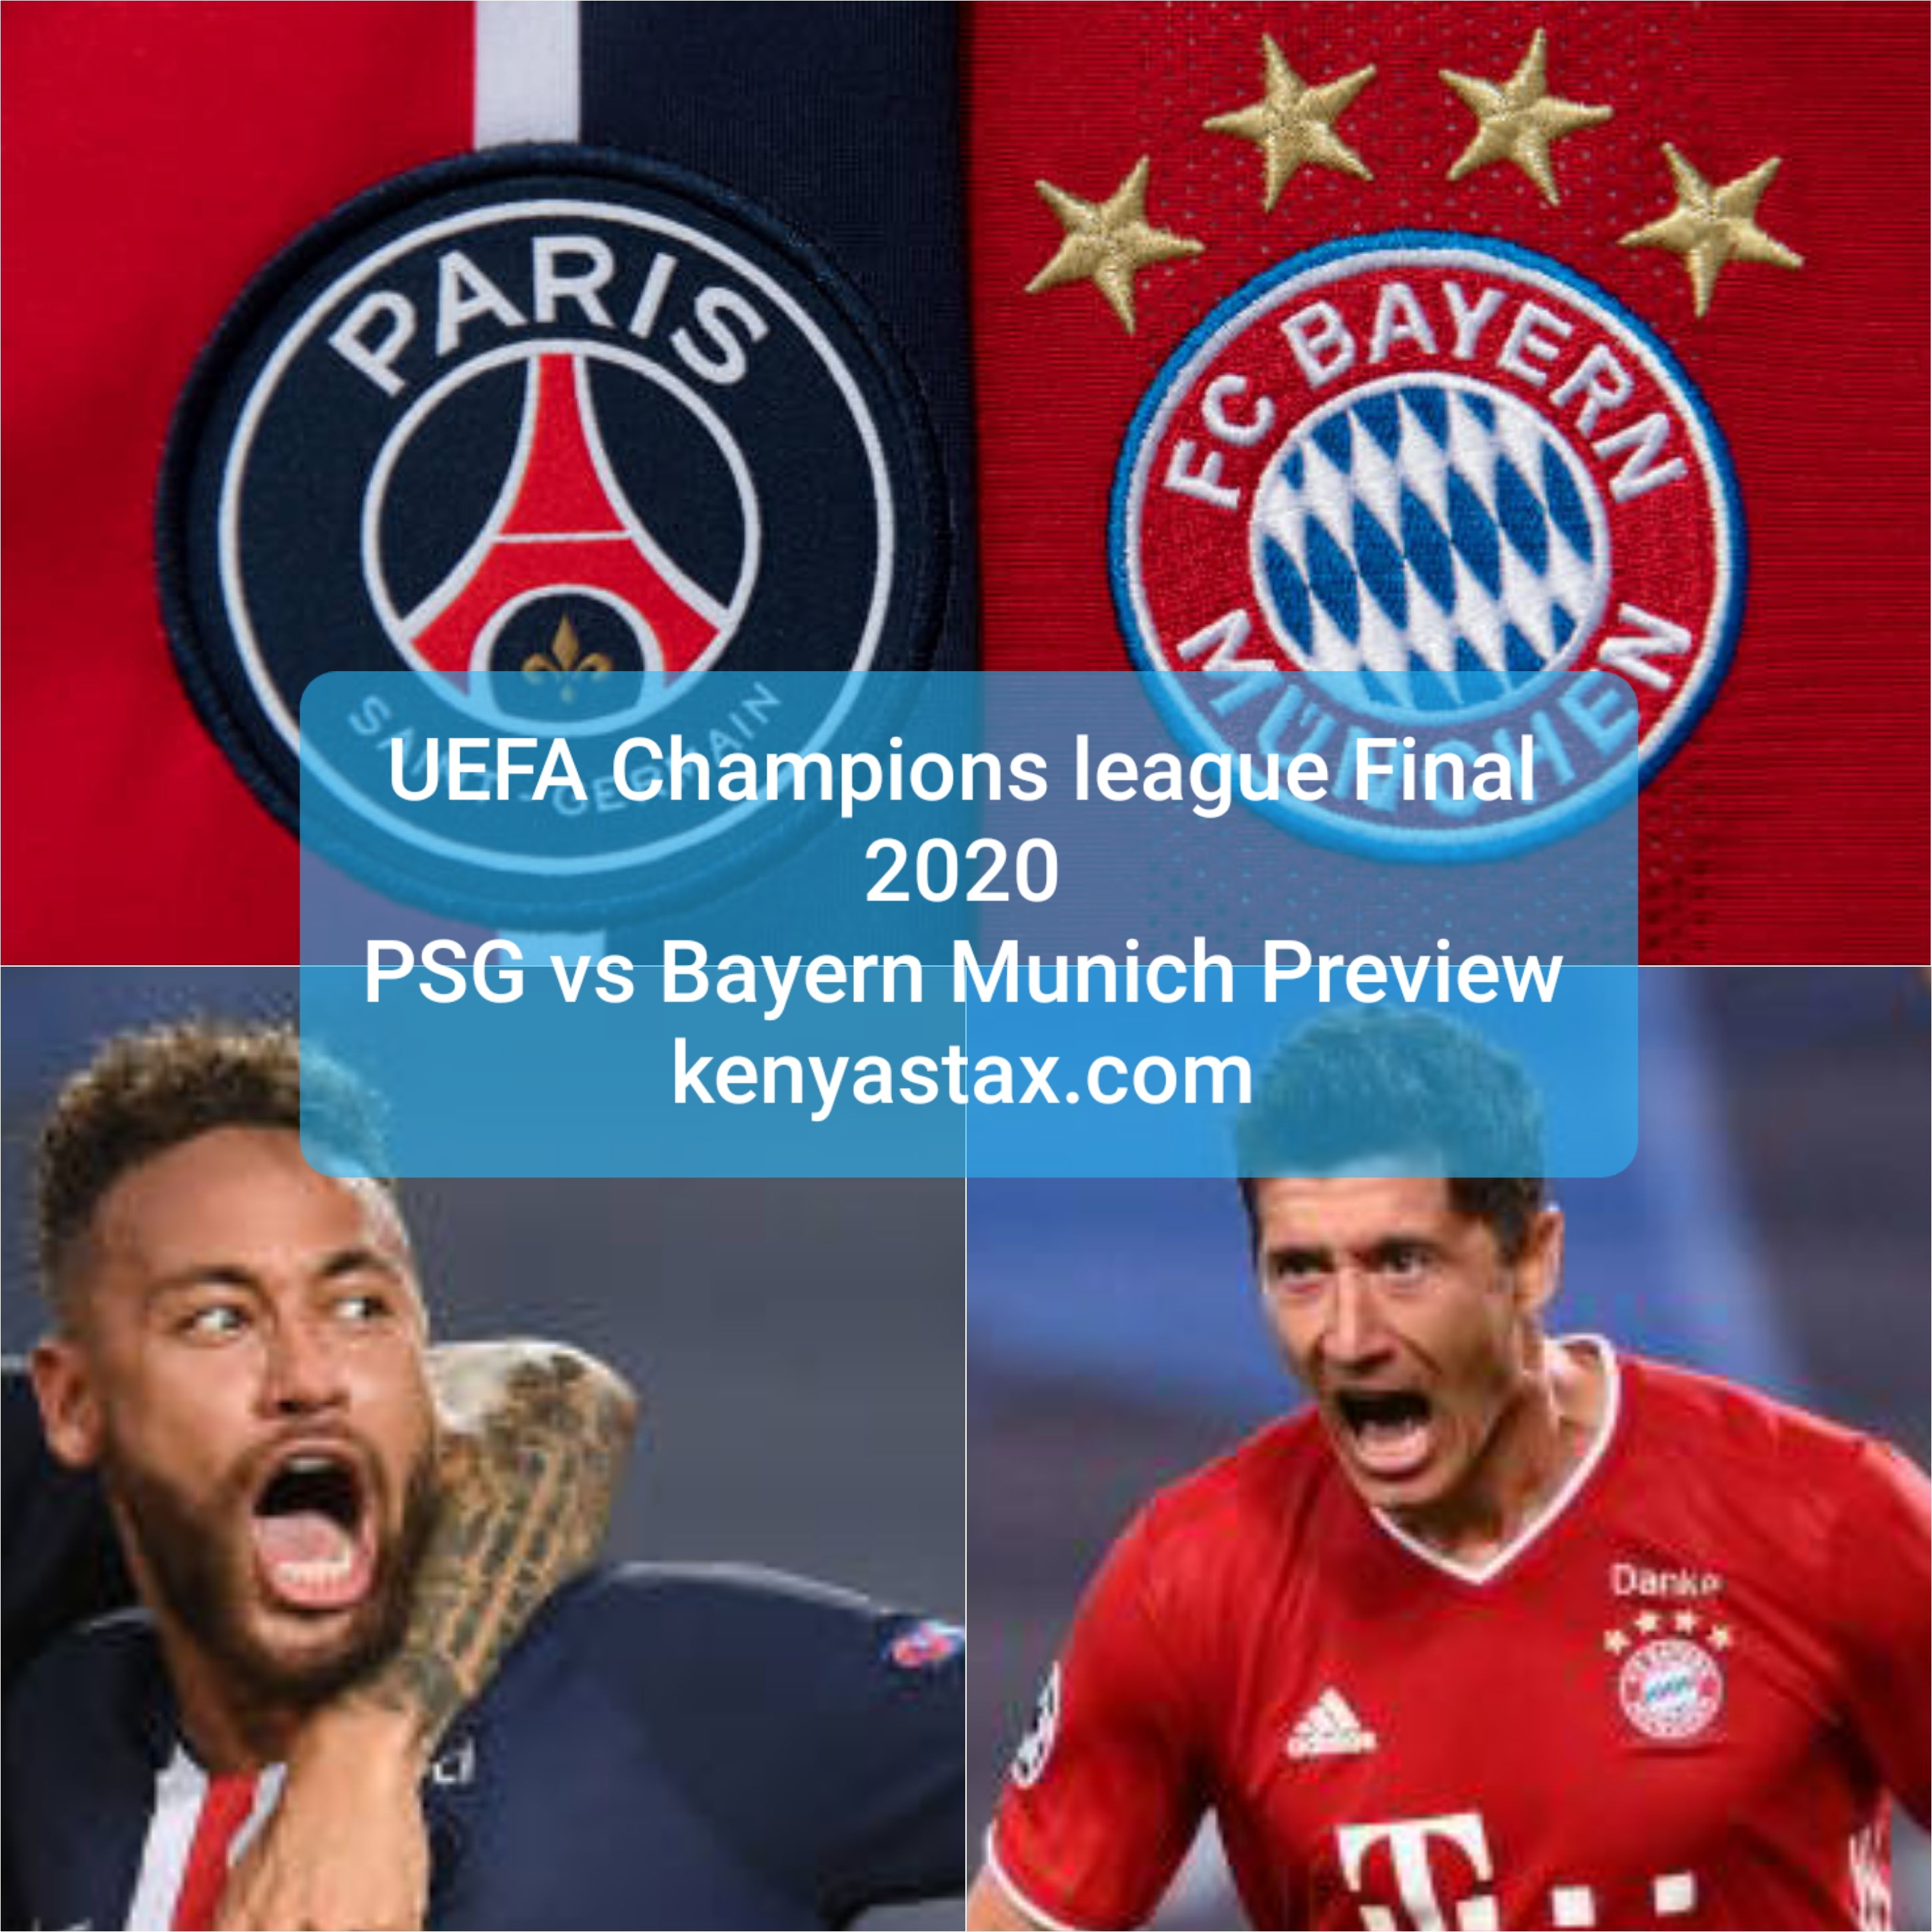 Psg Vs Bayern Munich Uefa Champions League Final 2020 Date Kick Off Time Venue And What Tv Channel Is It On Kenyastax